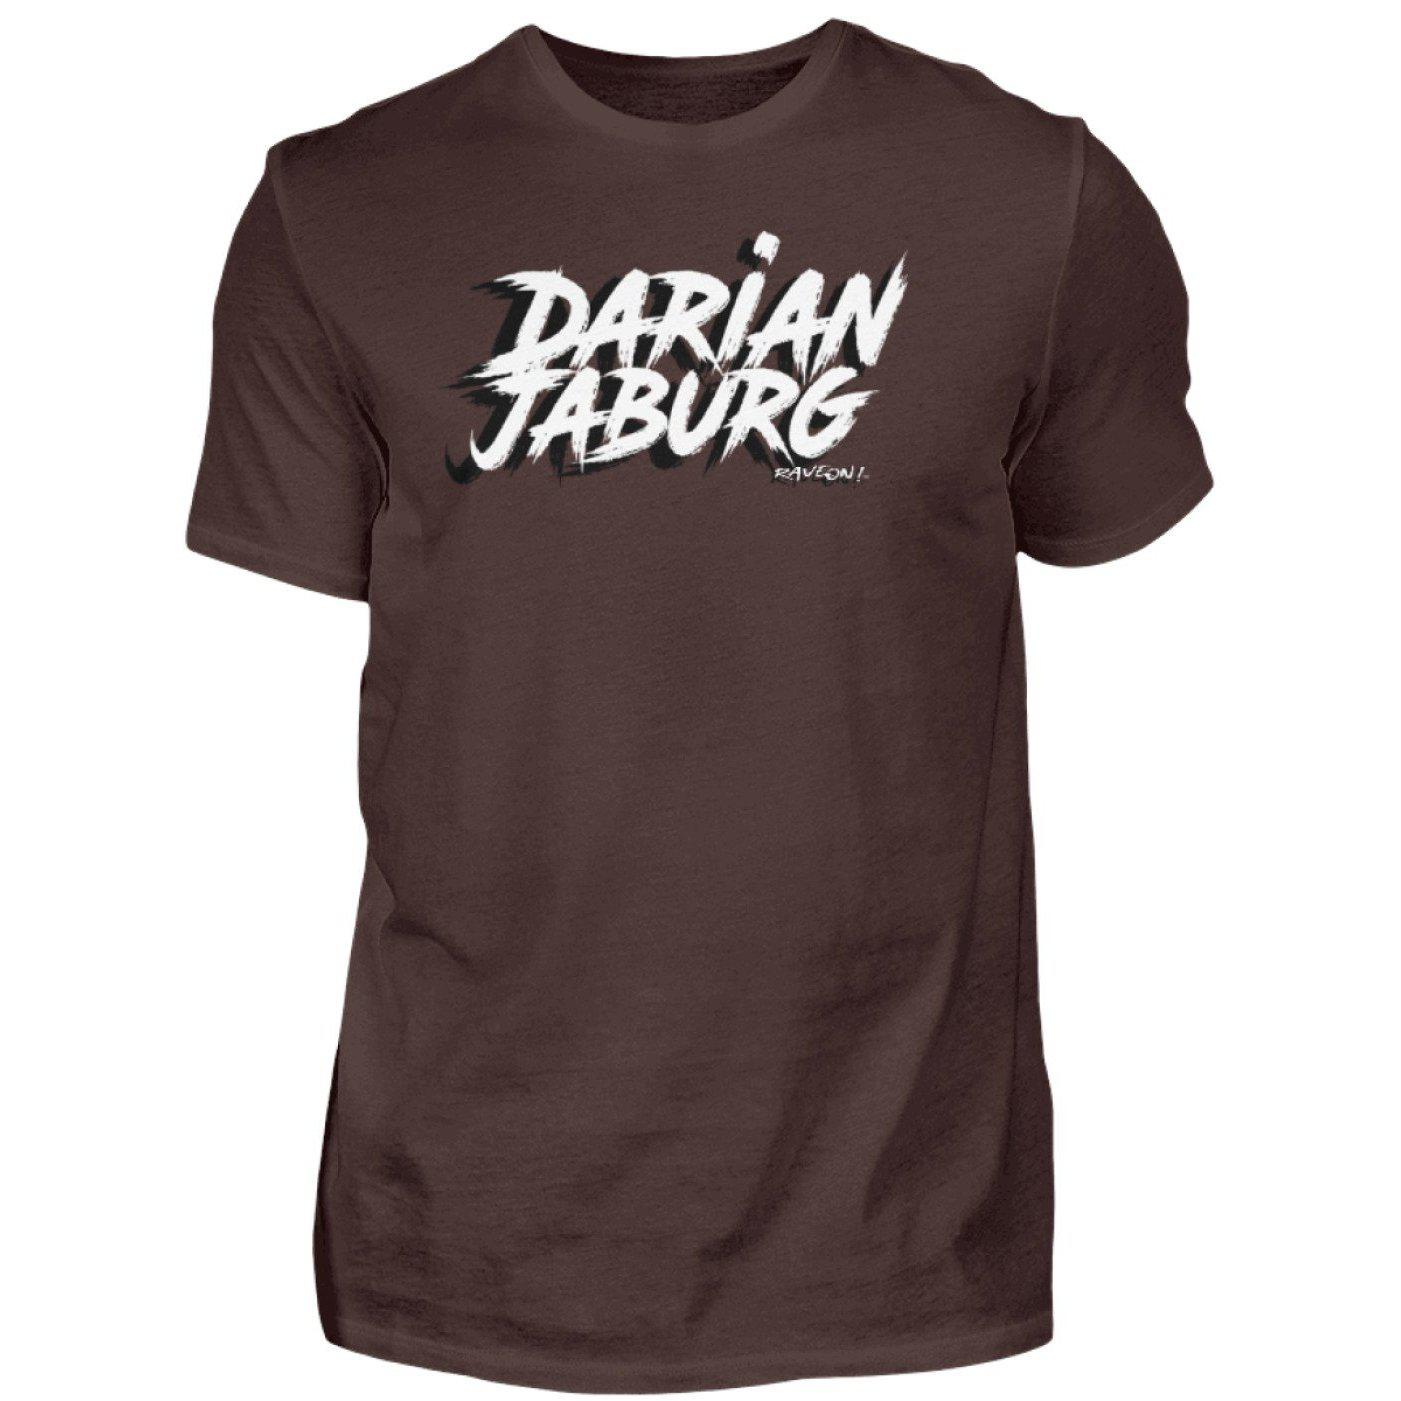 Darian Jaburg - BS Rec.Black - Rave On!® - Herren Premiumshirt Herren Premium Shirt Brown / S - Rave On!® der Club & Techno Szene Shop für Coole Junge Mode Streetwear Style & Fashion Outfits + Sexy Festival 420 Stuff